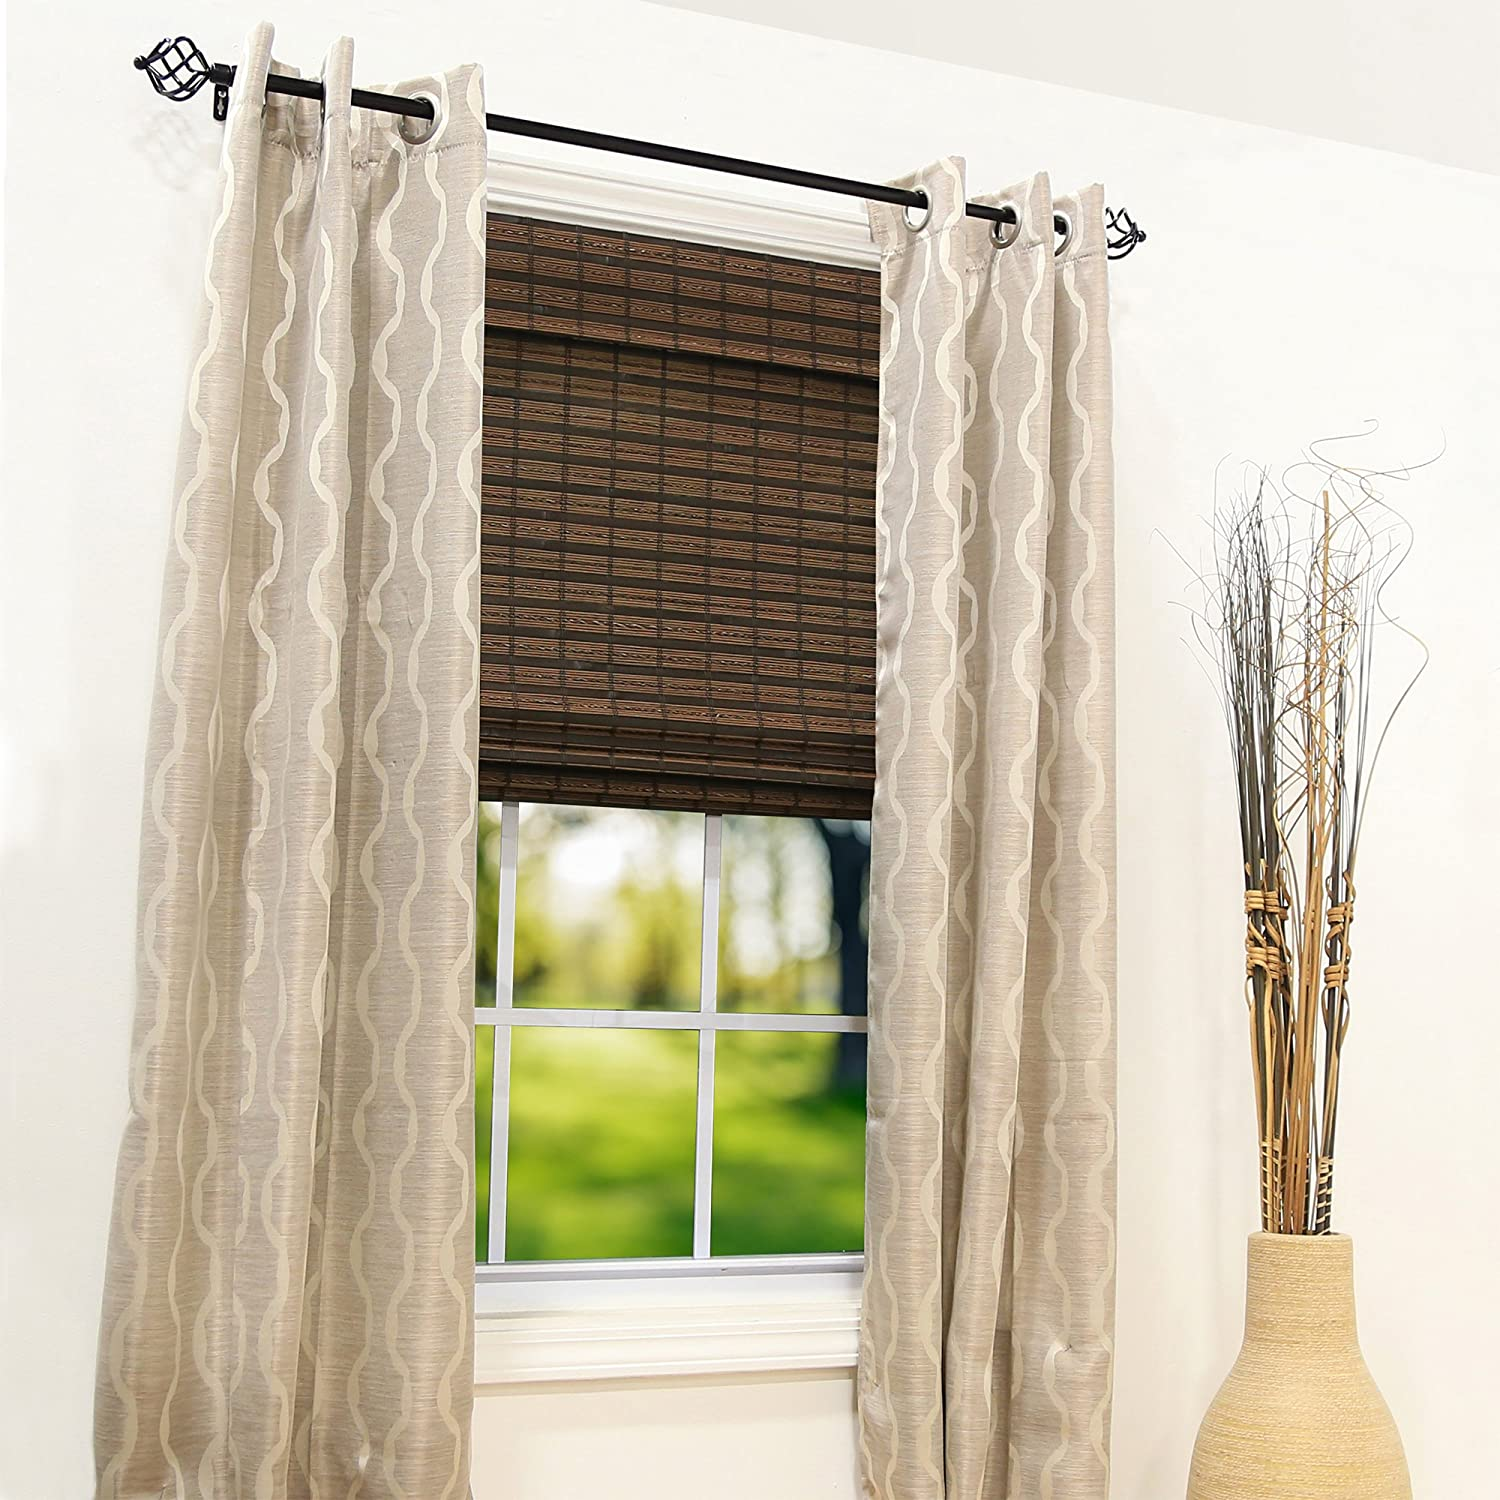 W x 64 in Radiance Cordless Cocoa Havana Flatweave Bamboo Roman Shade L 30 in